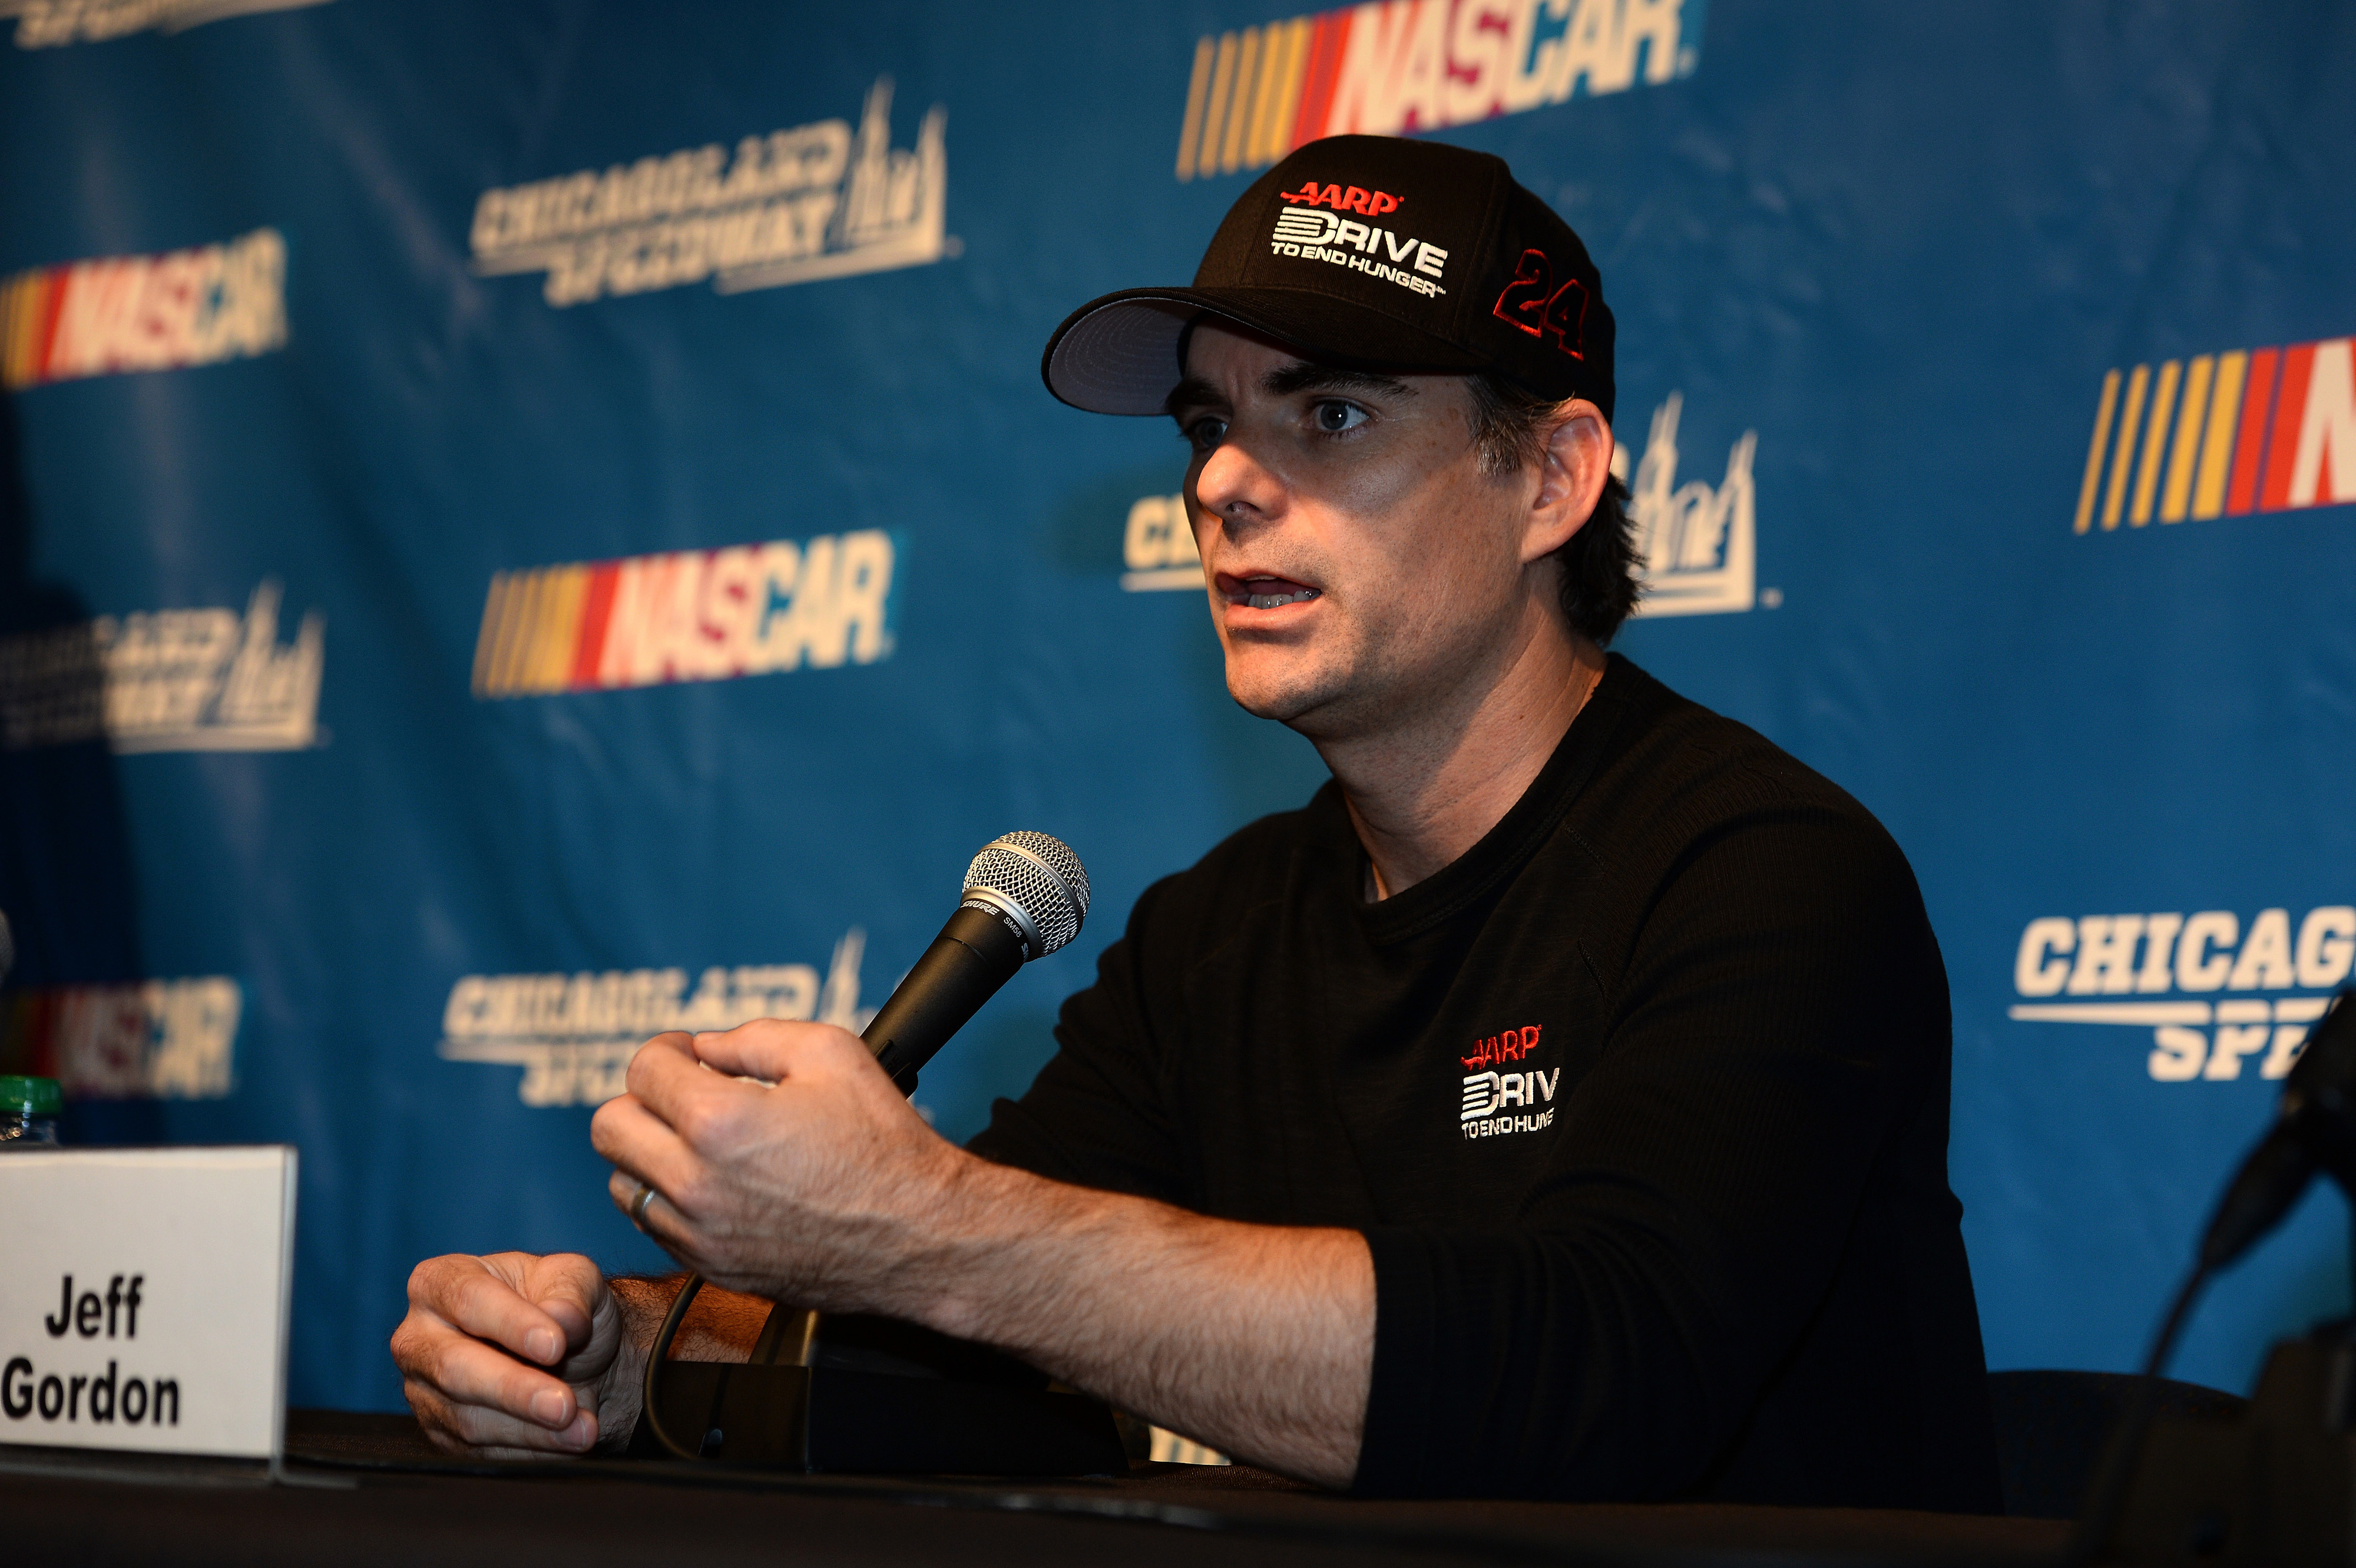 NASCAR adds Jeff Gordon to Chase for the Sprint Cup